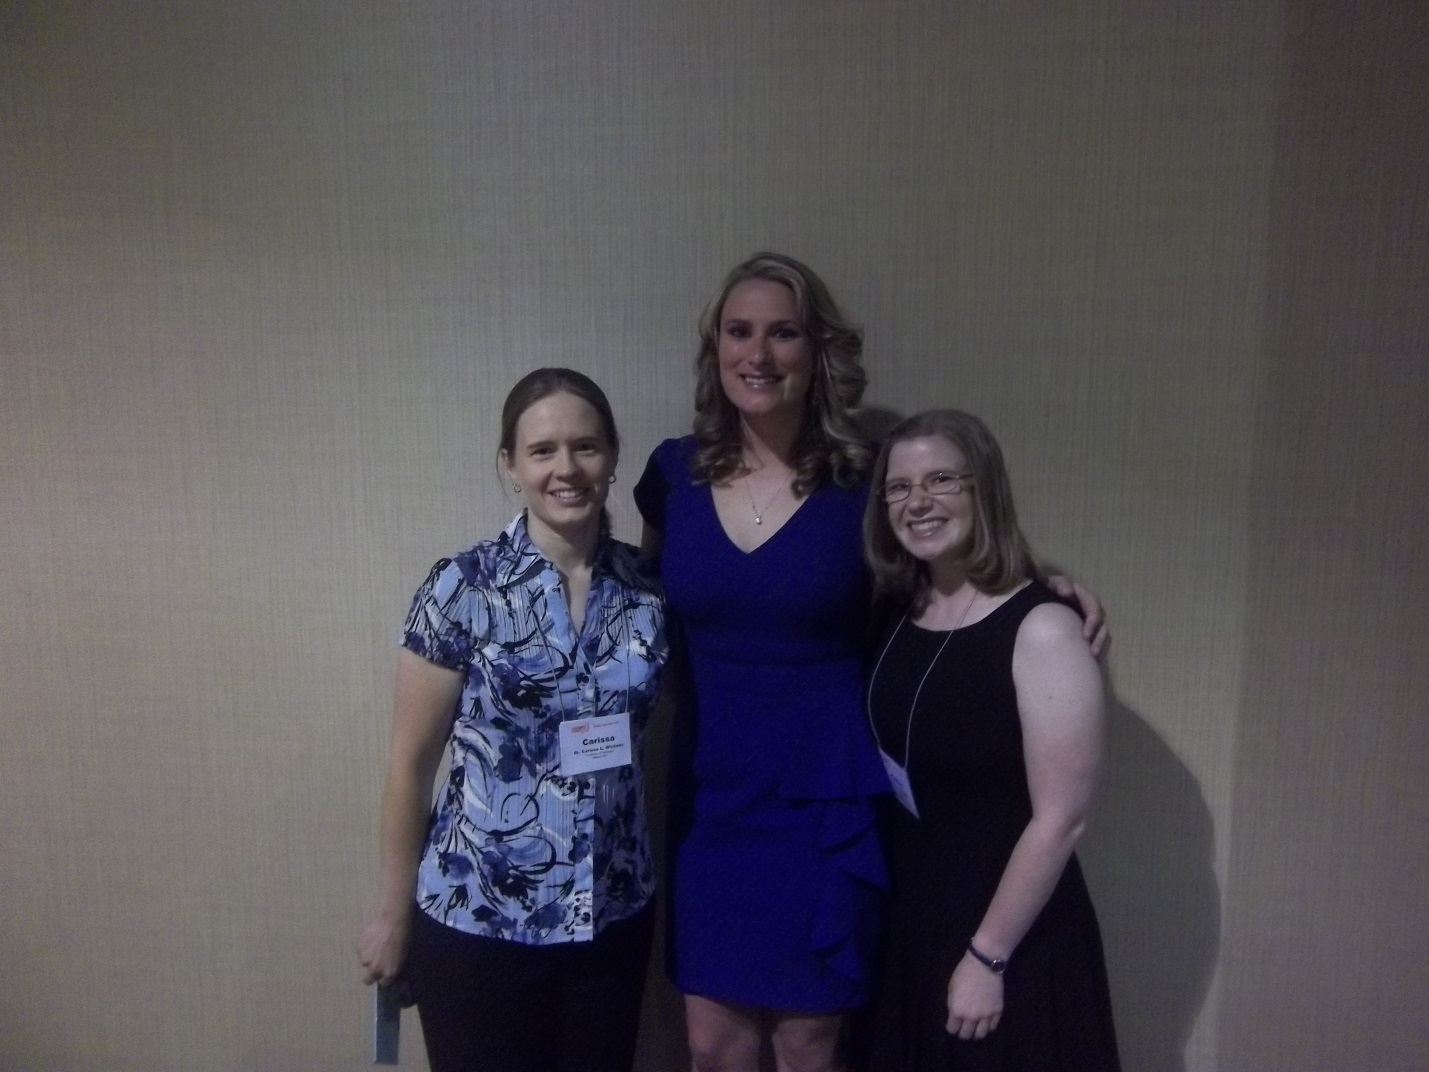 From left to right: Dr. Carissa Wickens (Equine Extension Specialist, Equine Management Professor, and my mentor for this project), Ms. Jessie Weir (Dr. Wickens's PhD student), and myself at the awards banquet at the close of the symposium.